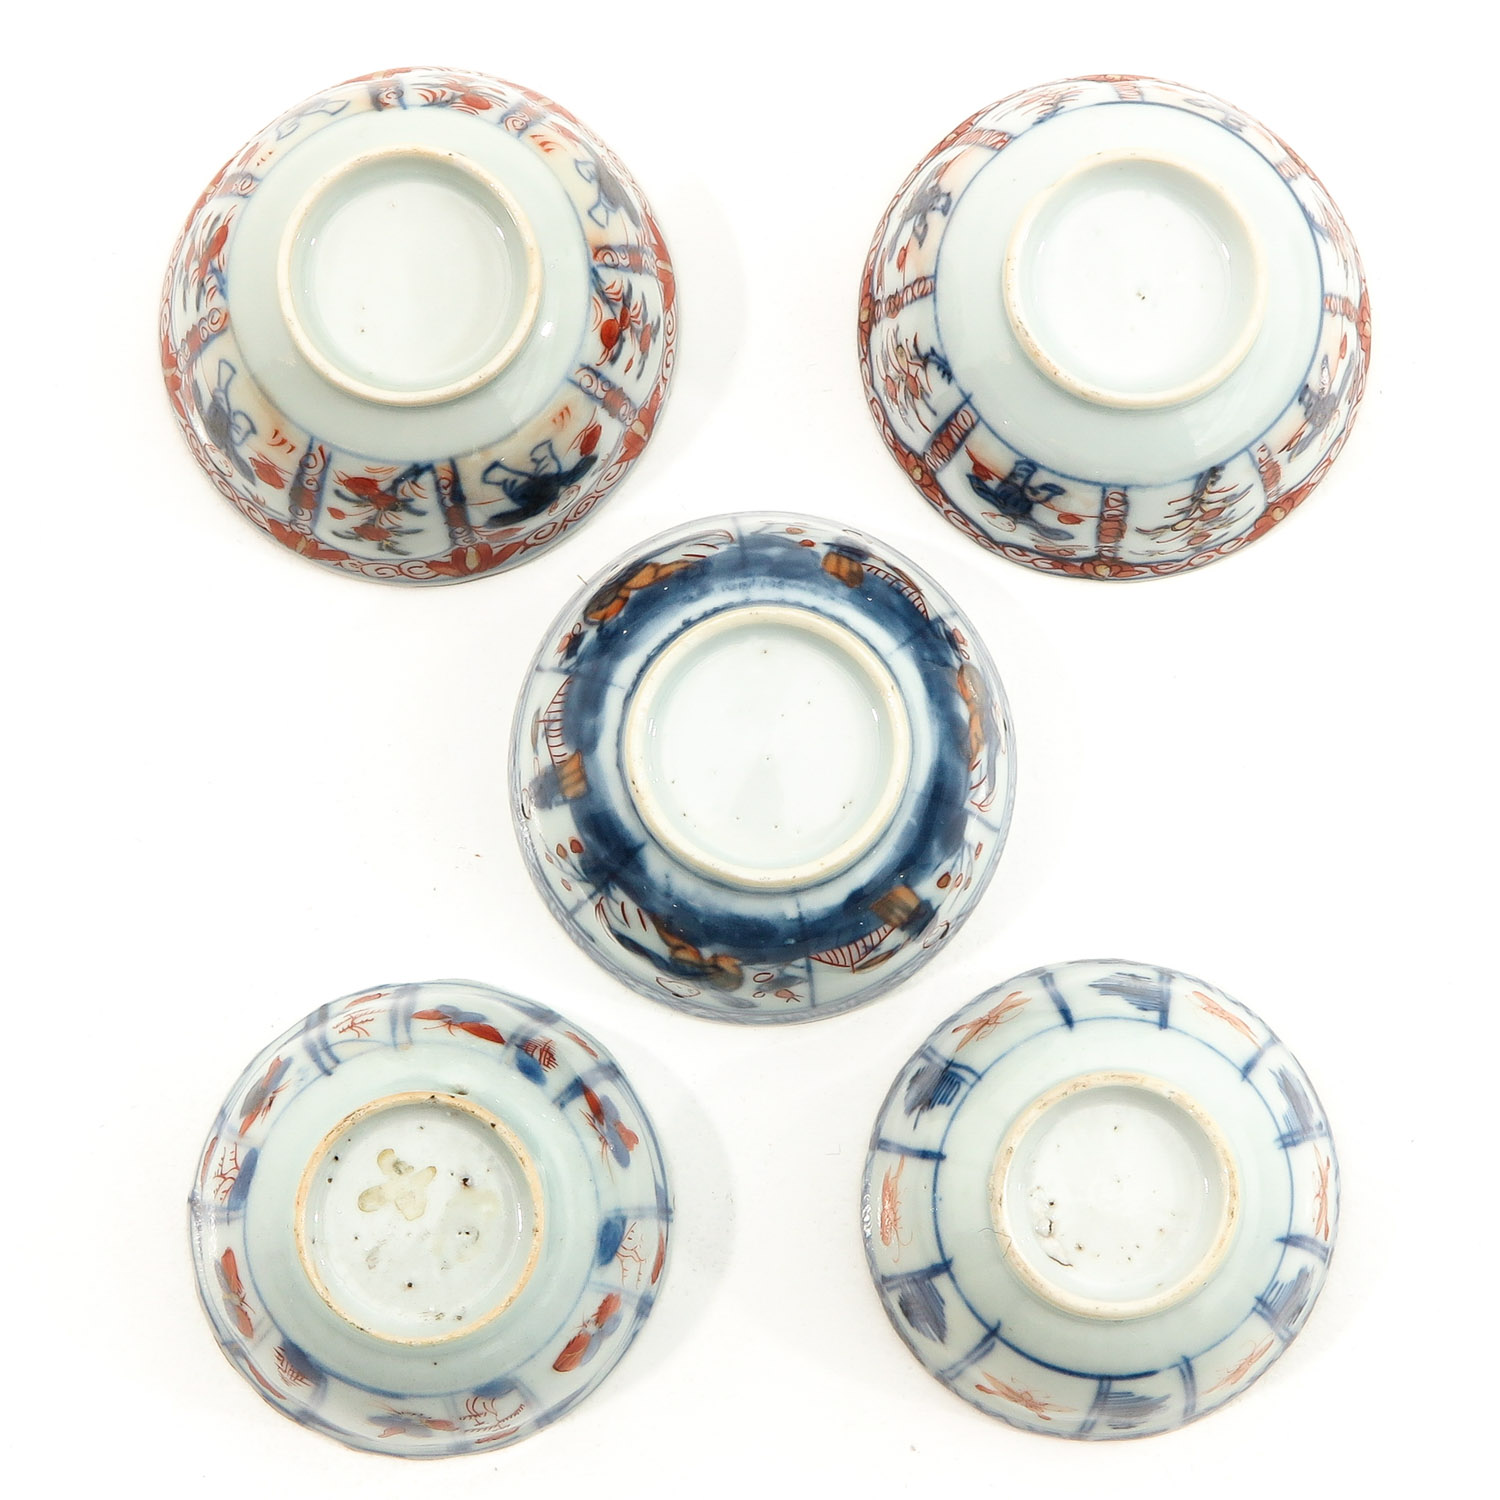 A Lot of 5 Cups and Saucers - Image 6 of 10